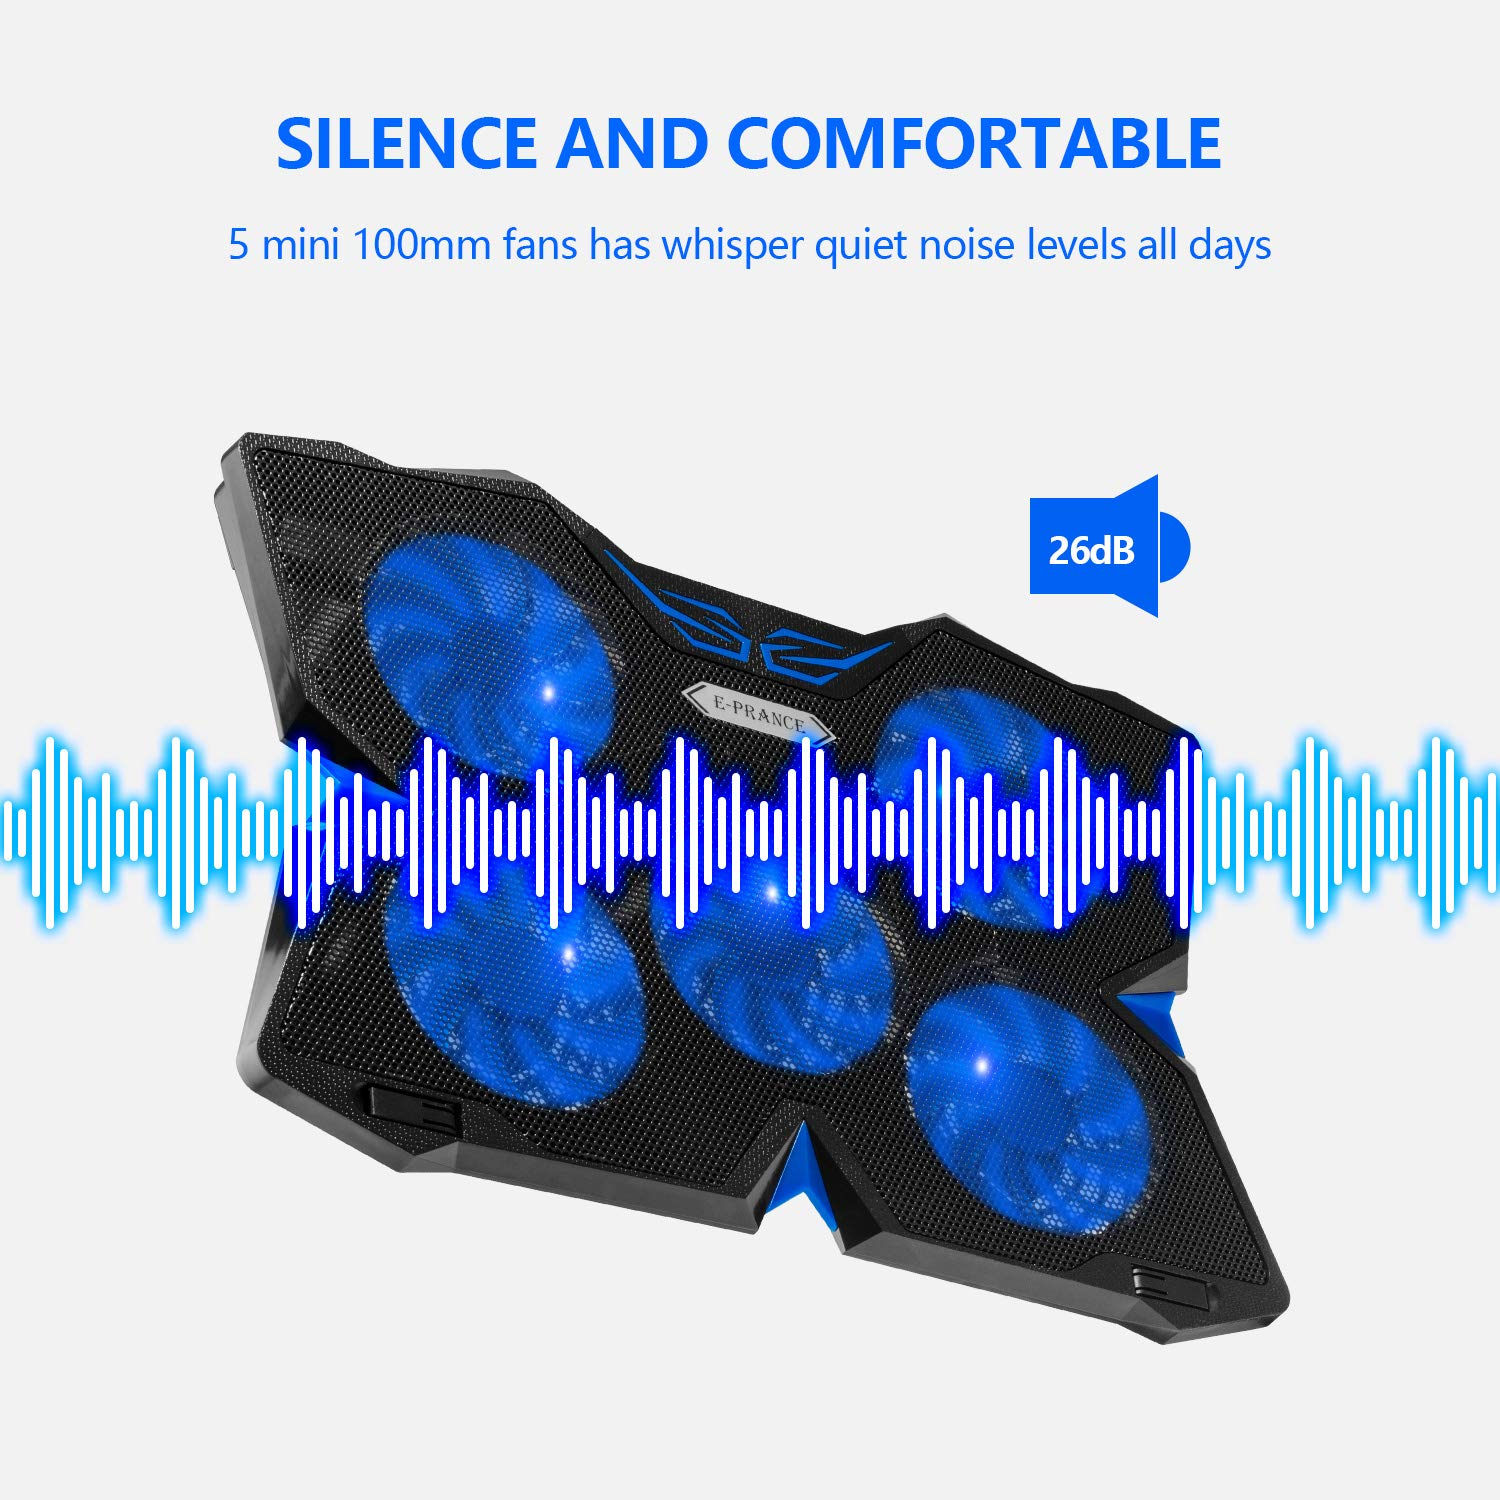 Light Weight Fits for 14-17/'/' Laptop Laptop cooler Pad E-PRANC Laptop Cooling with 5 Fans Ultra-silent